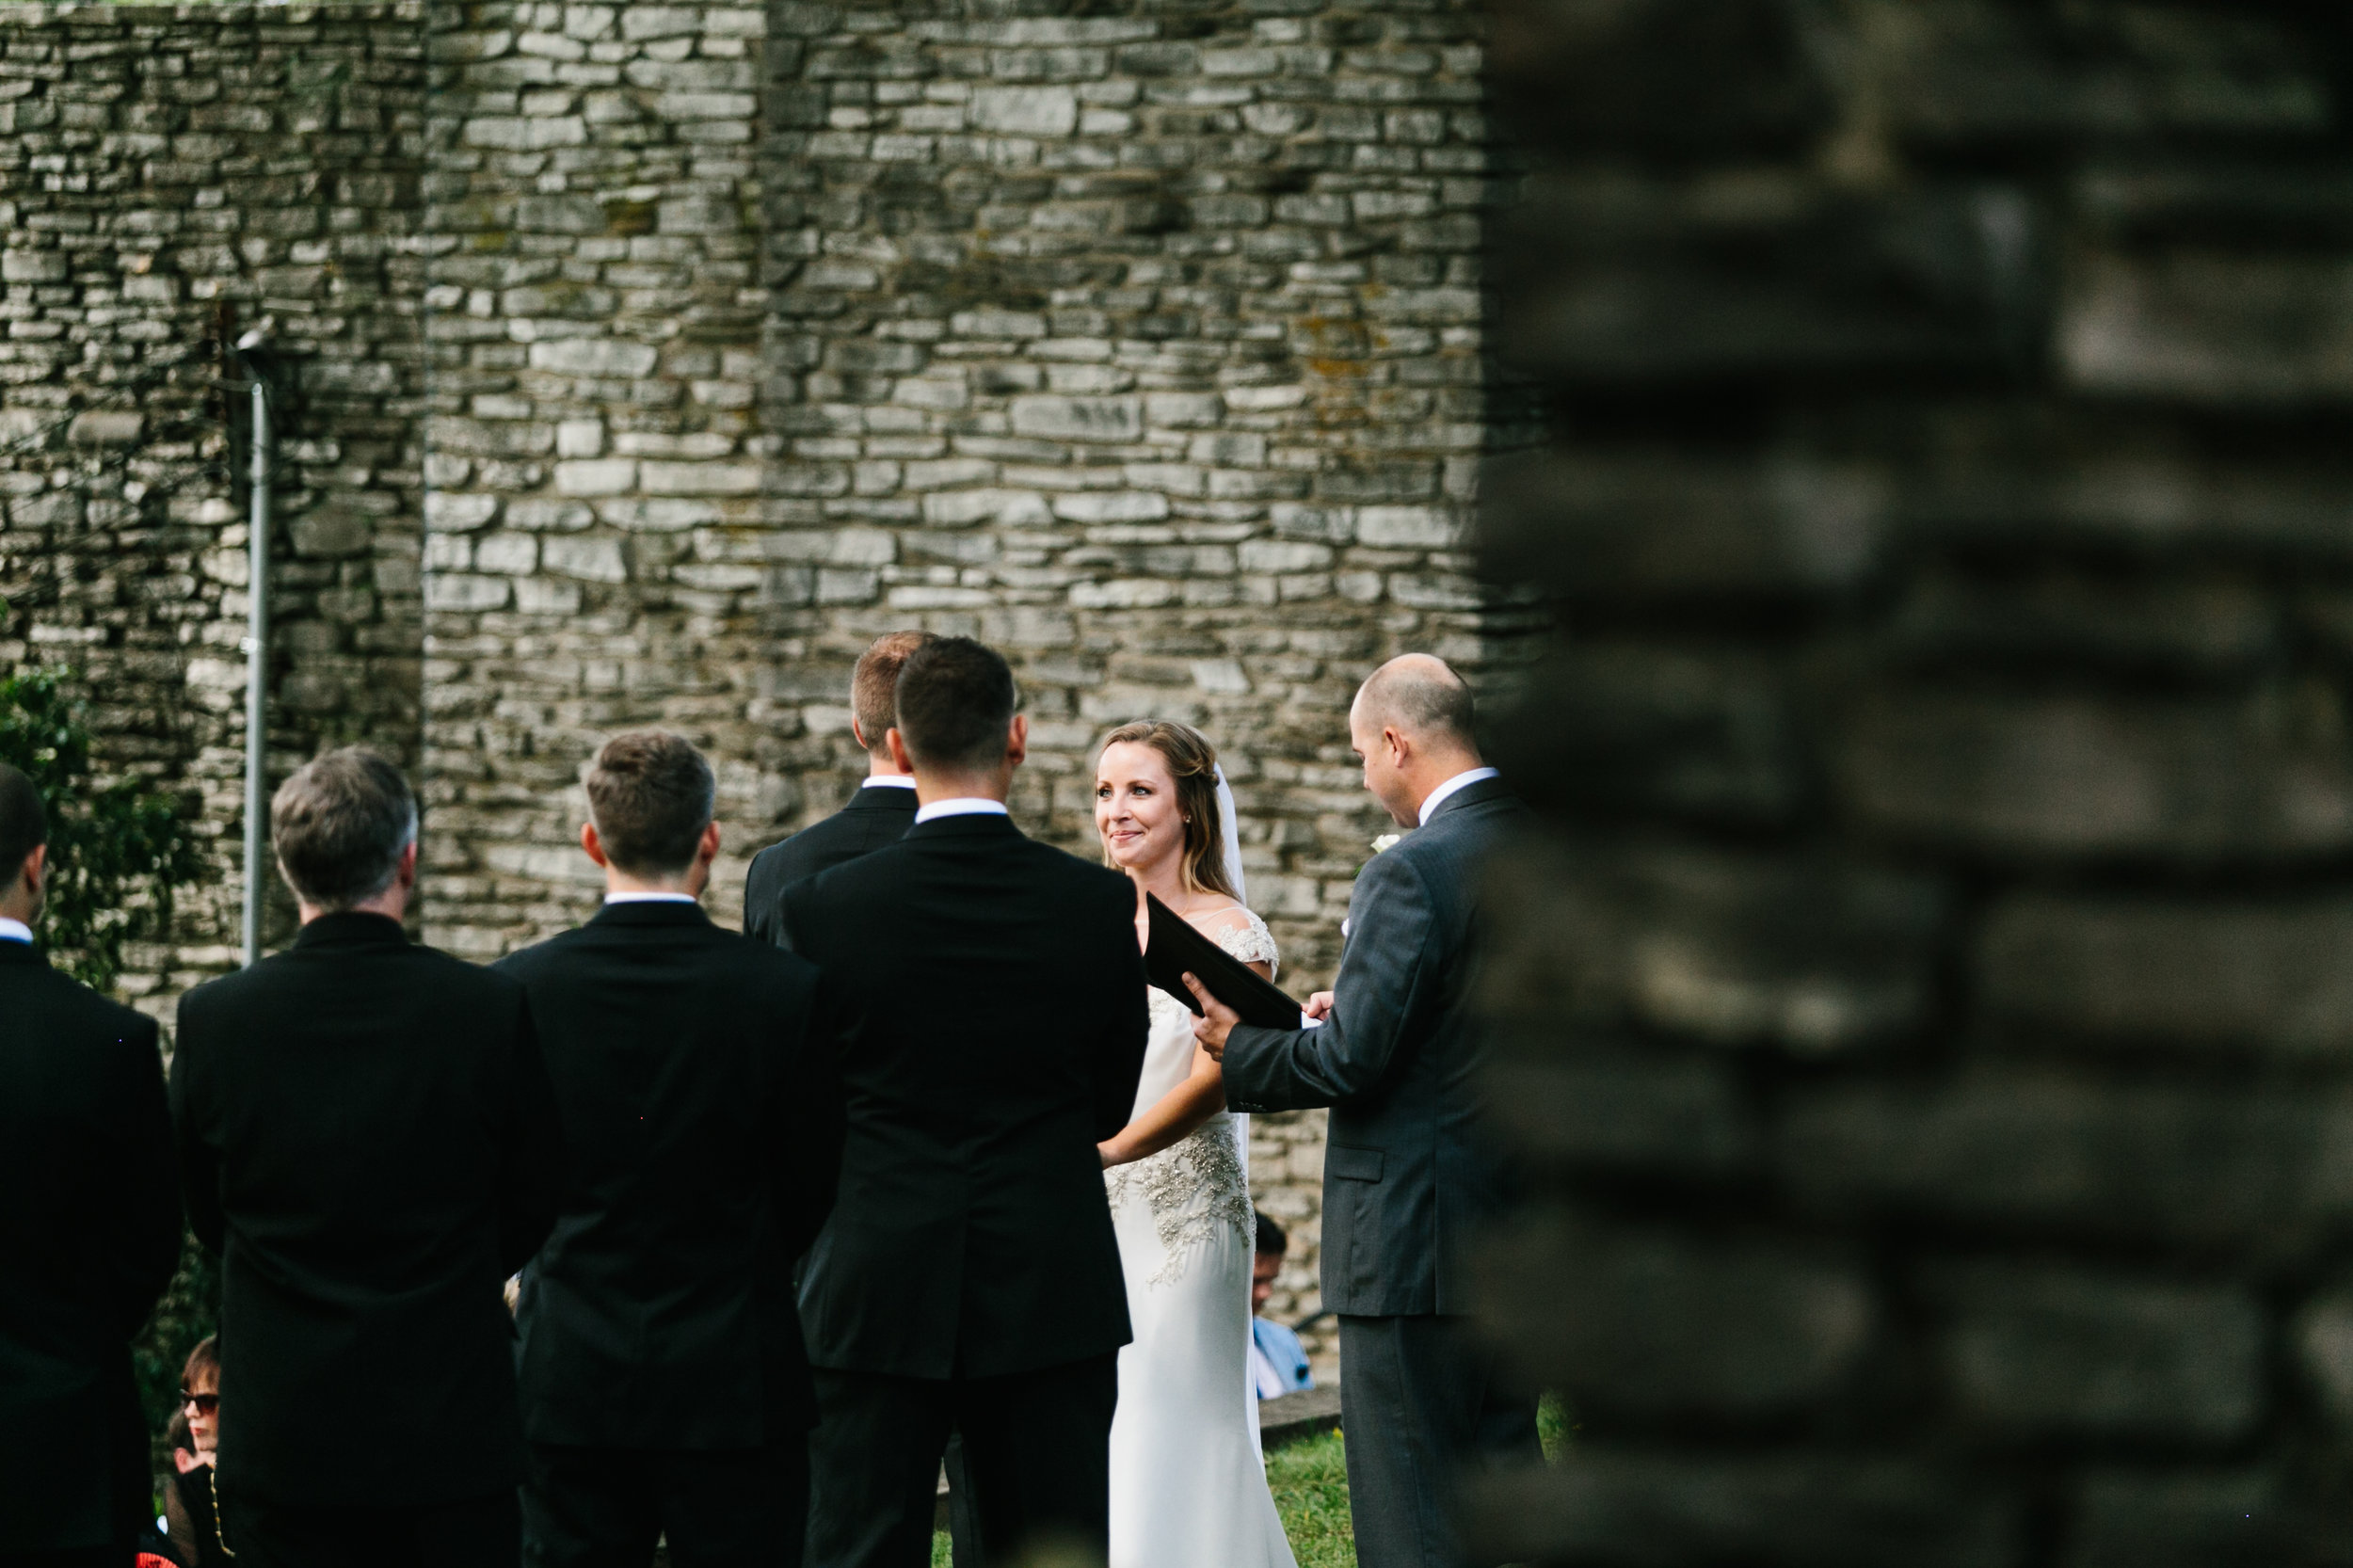 Katie_Matt_Wedding_Knoxville_Botanical_Garden_Abigail_Malone_photography-256.jpg